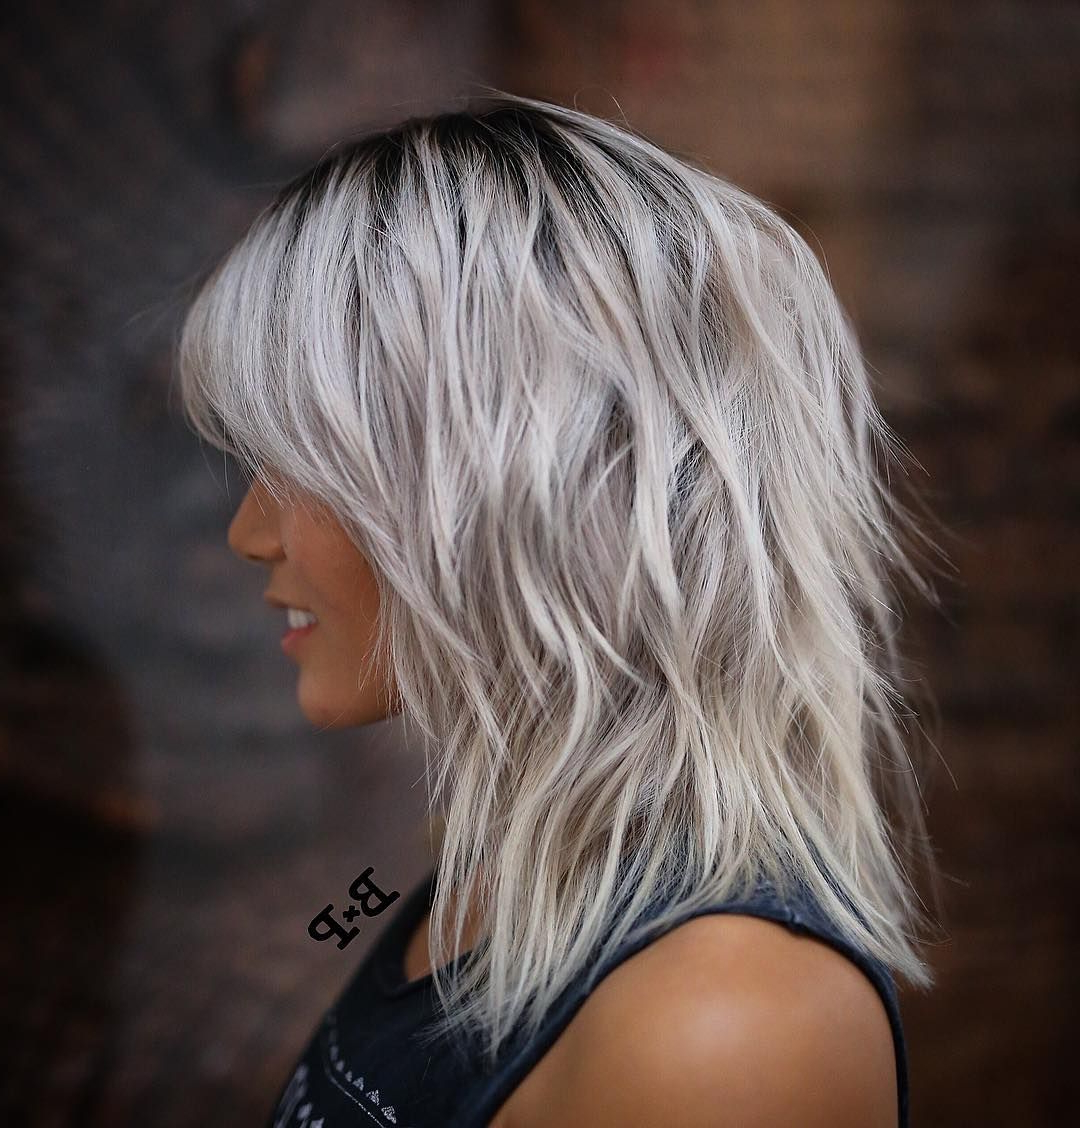 Well Known Mid Length Light Blonde Shag Haircuts With Bangs In Pin On Modern Shag Haircut (View 2 of 20)